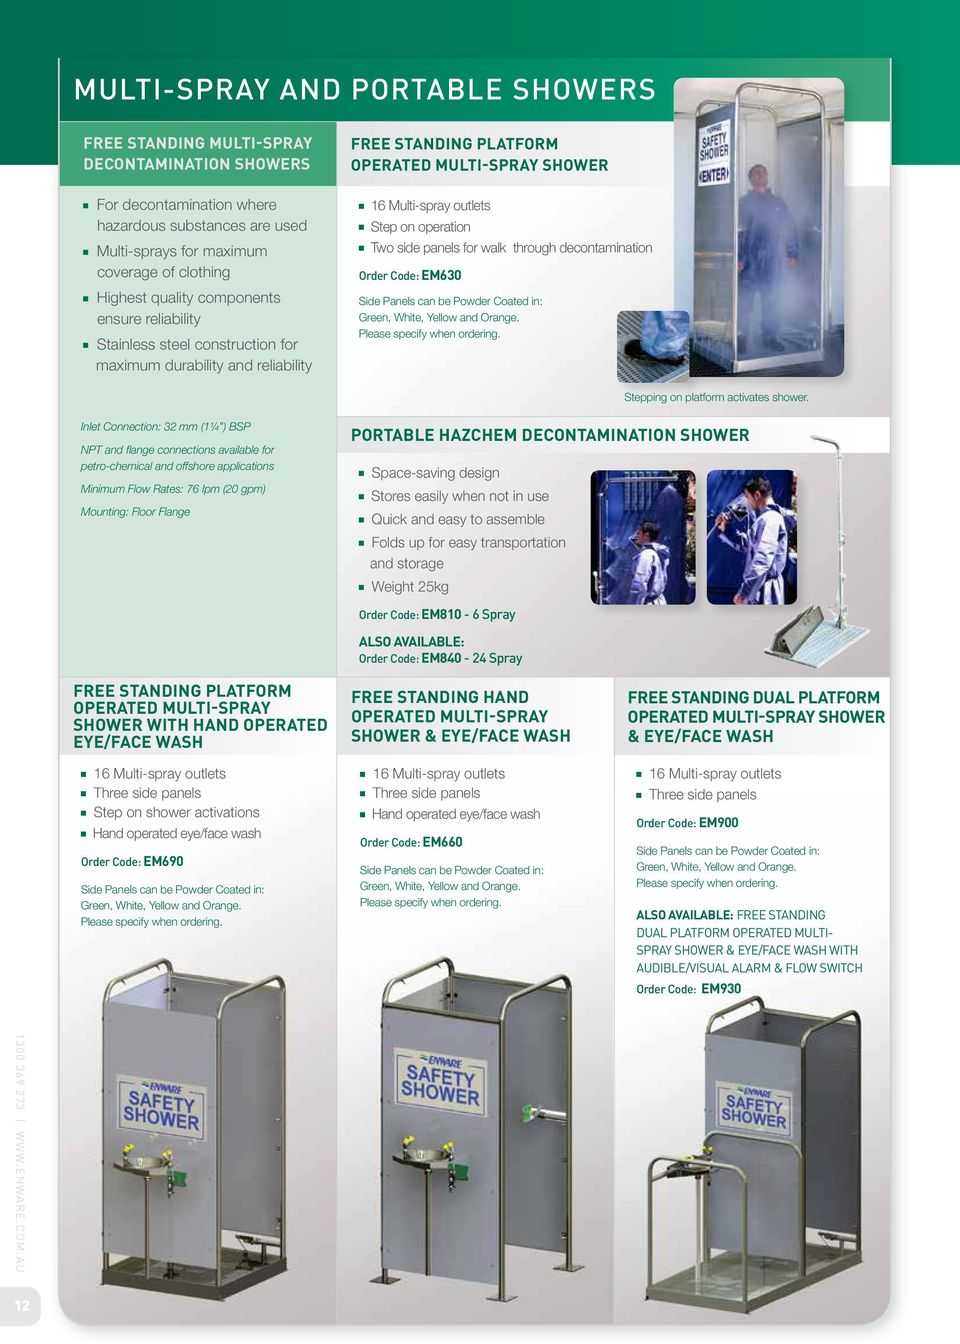 medium resolution of two side panels for walk through decontamination em630 side panels can be powder coated in emergency showers